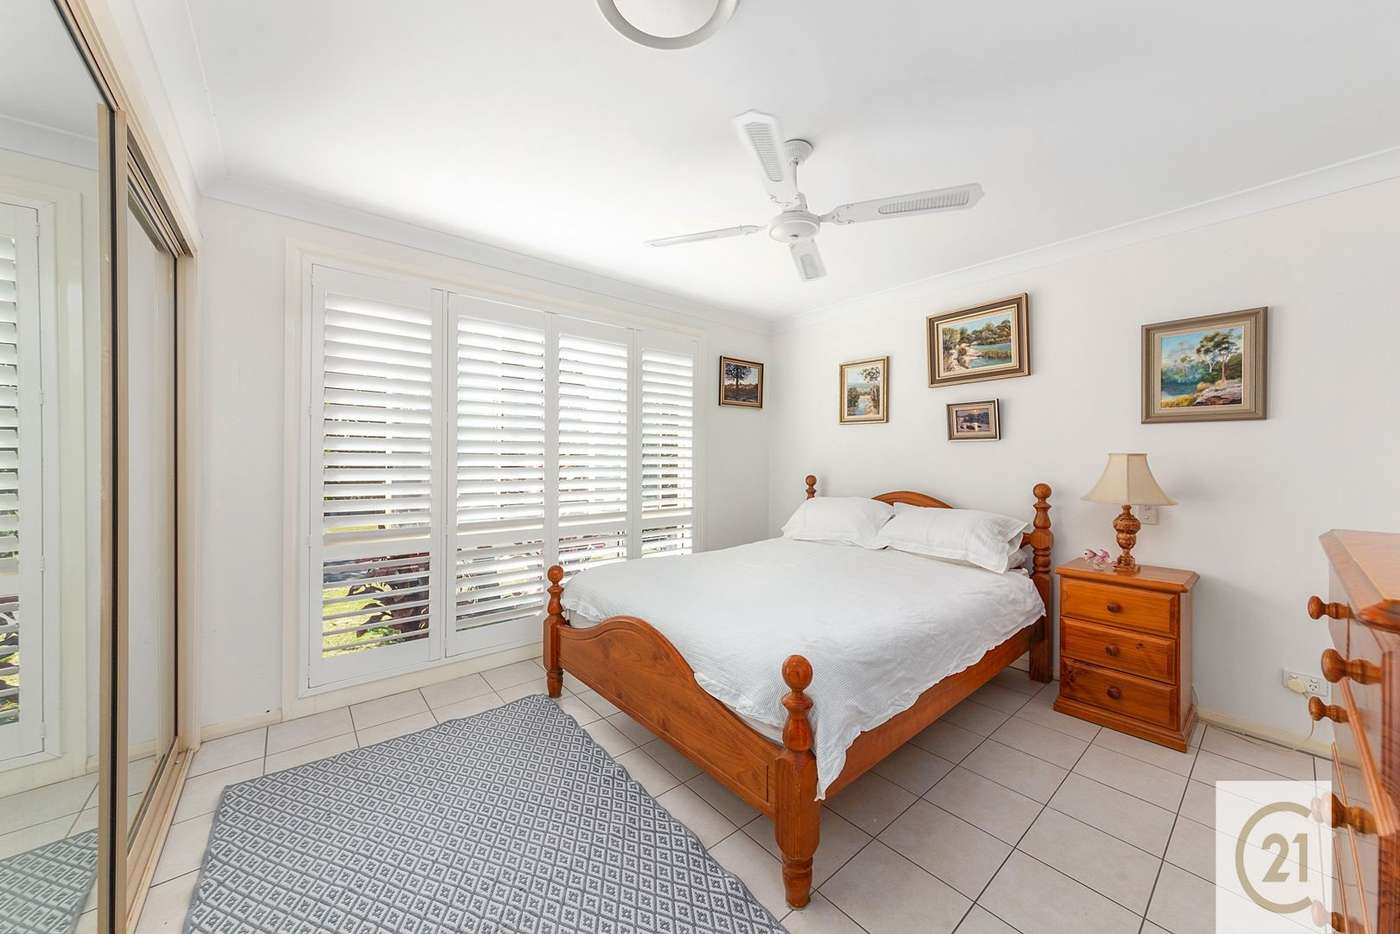 Fifth view of Homely house listing, 23 Shores Close, Salamander Bay NSW 2317